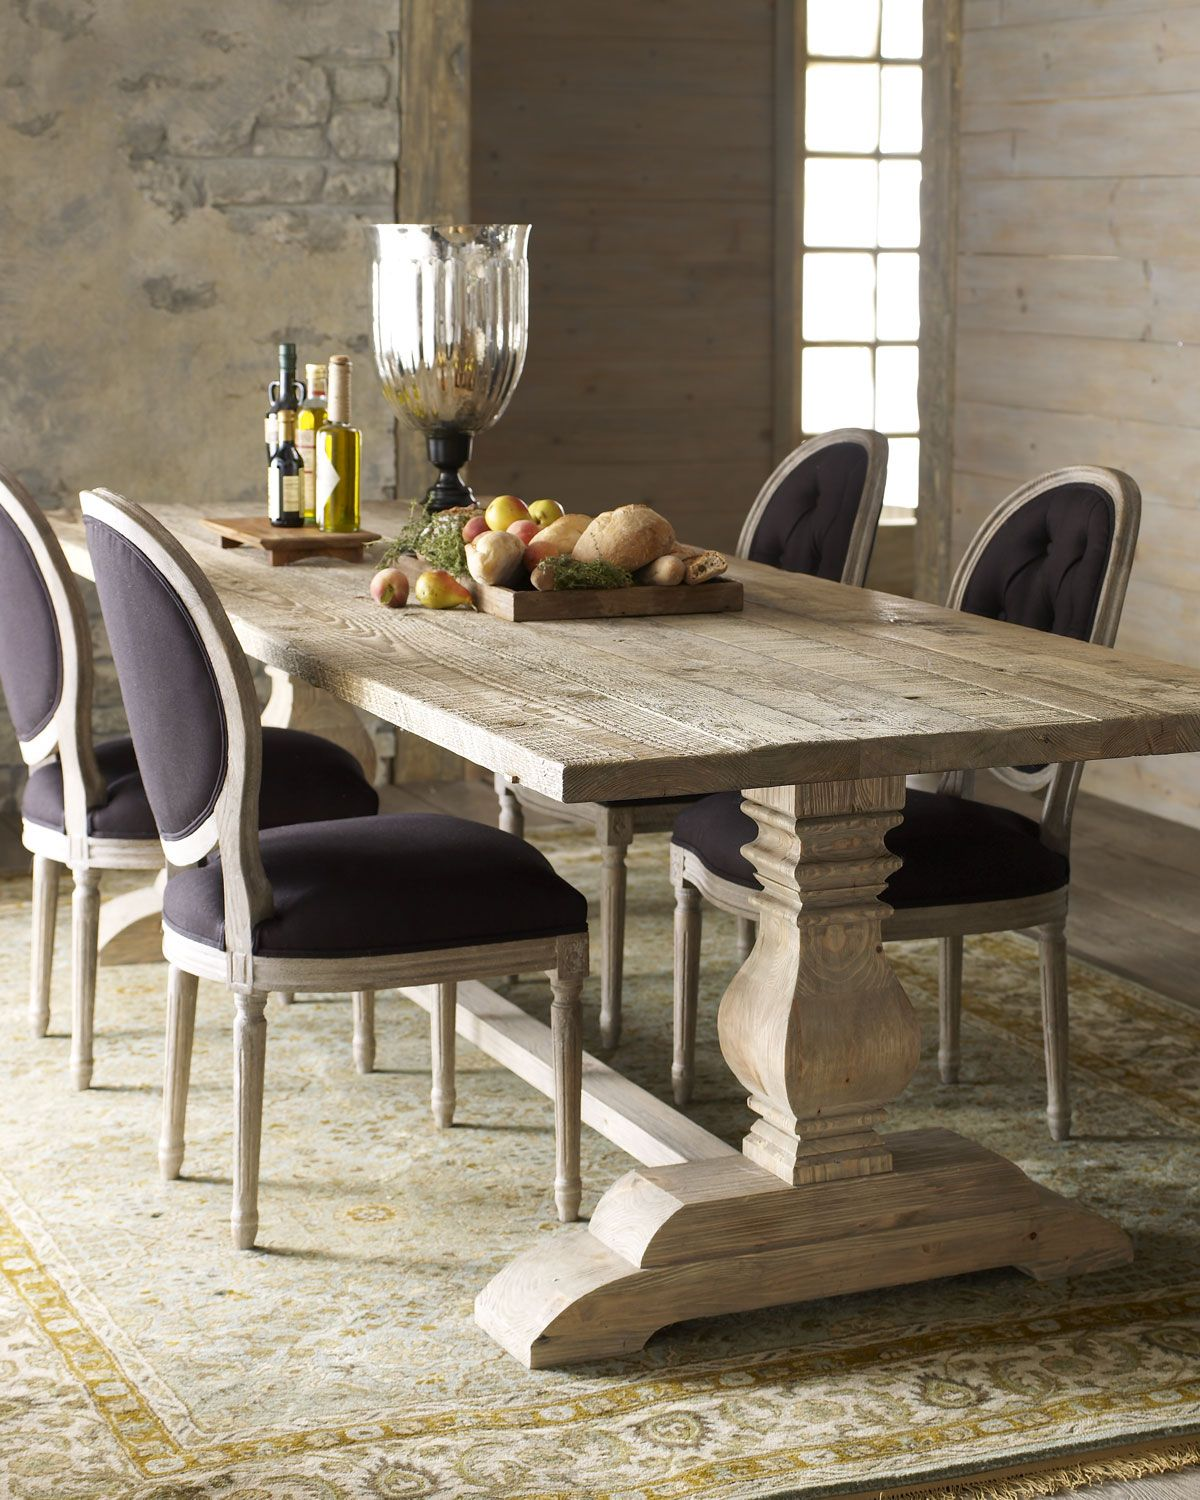 Natural Dining Table Black Linen Chairs Dining Table Black